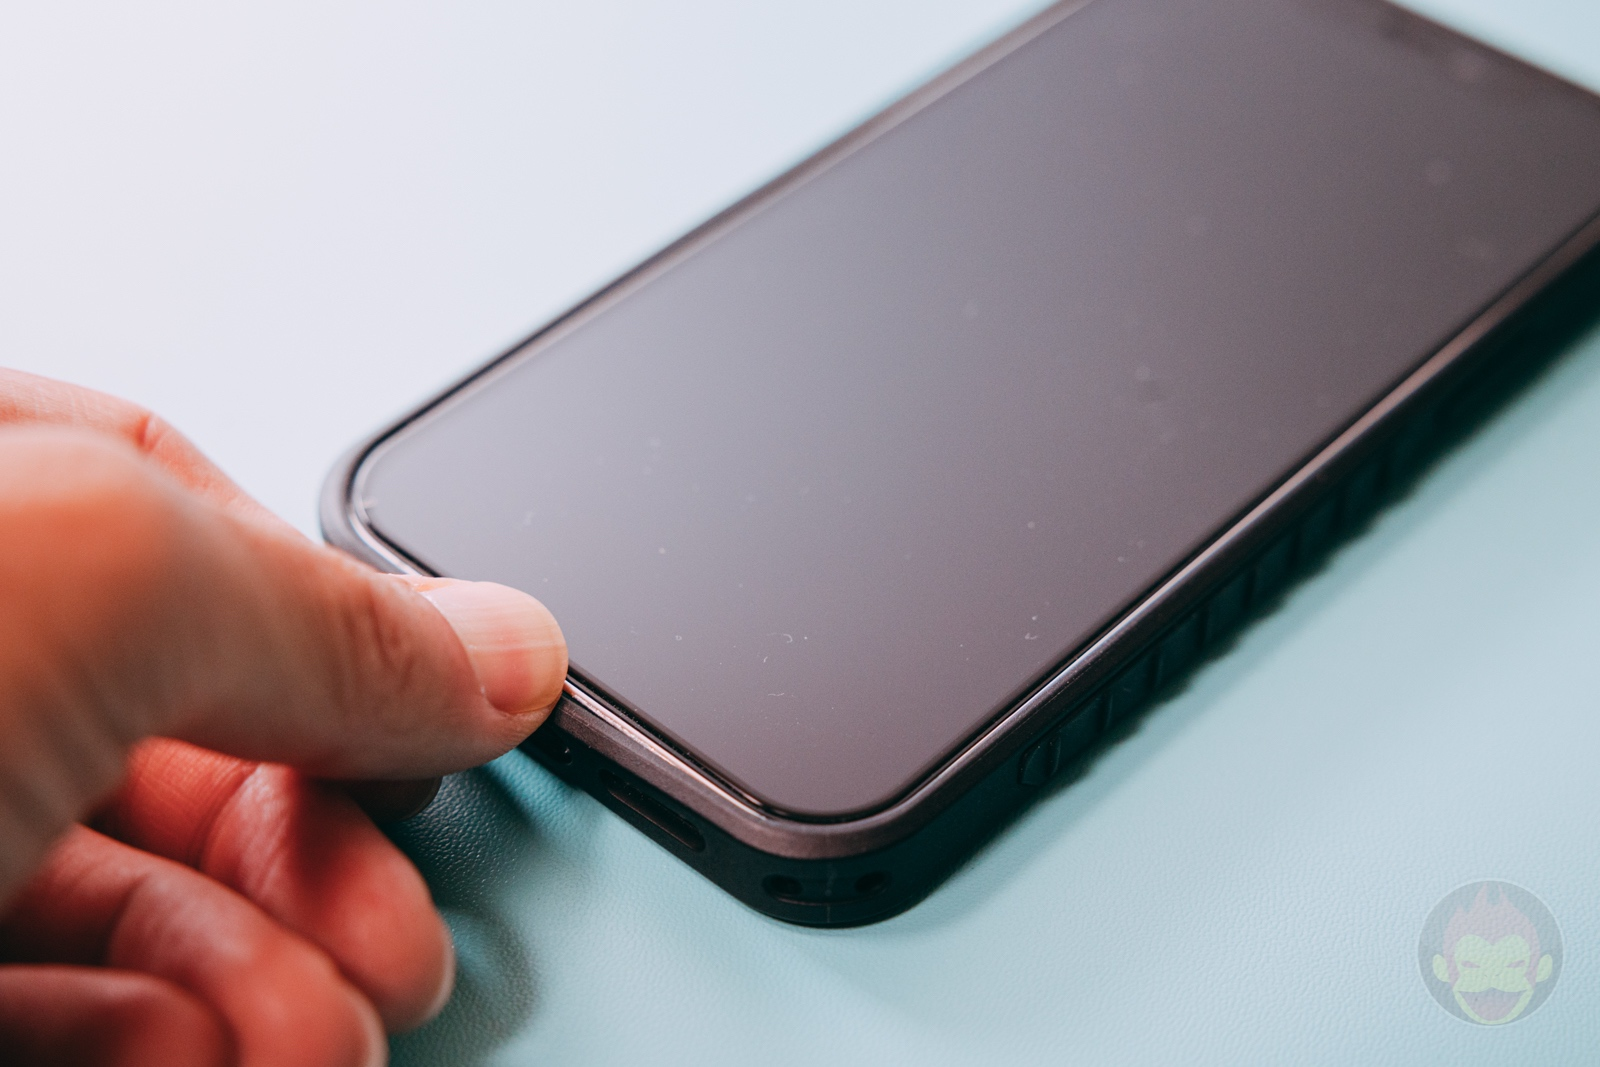 Anker Magnetic Silicone Case Review 06